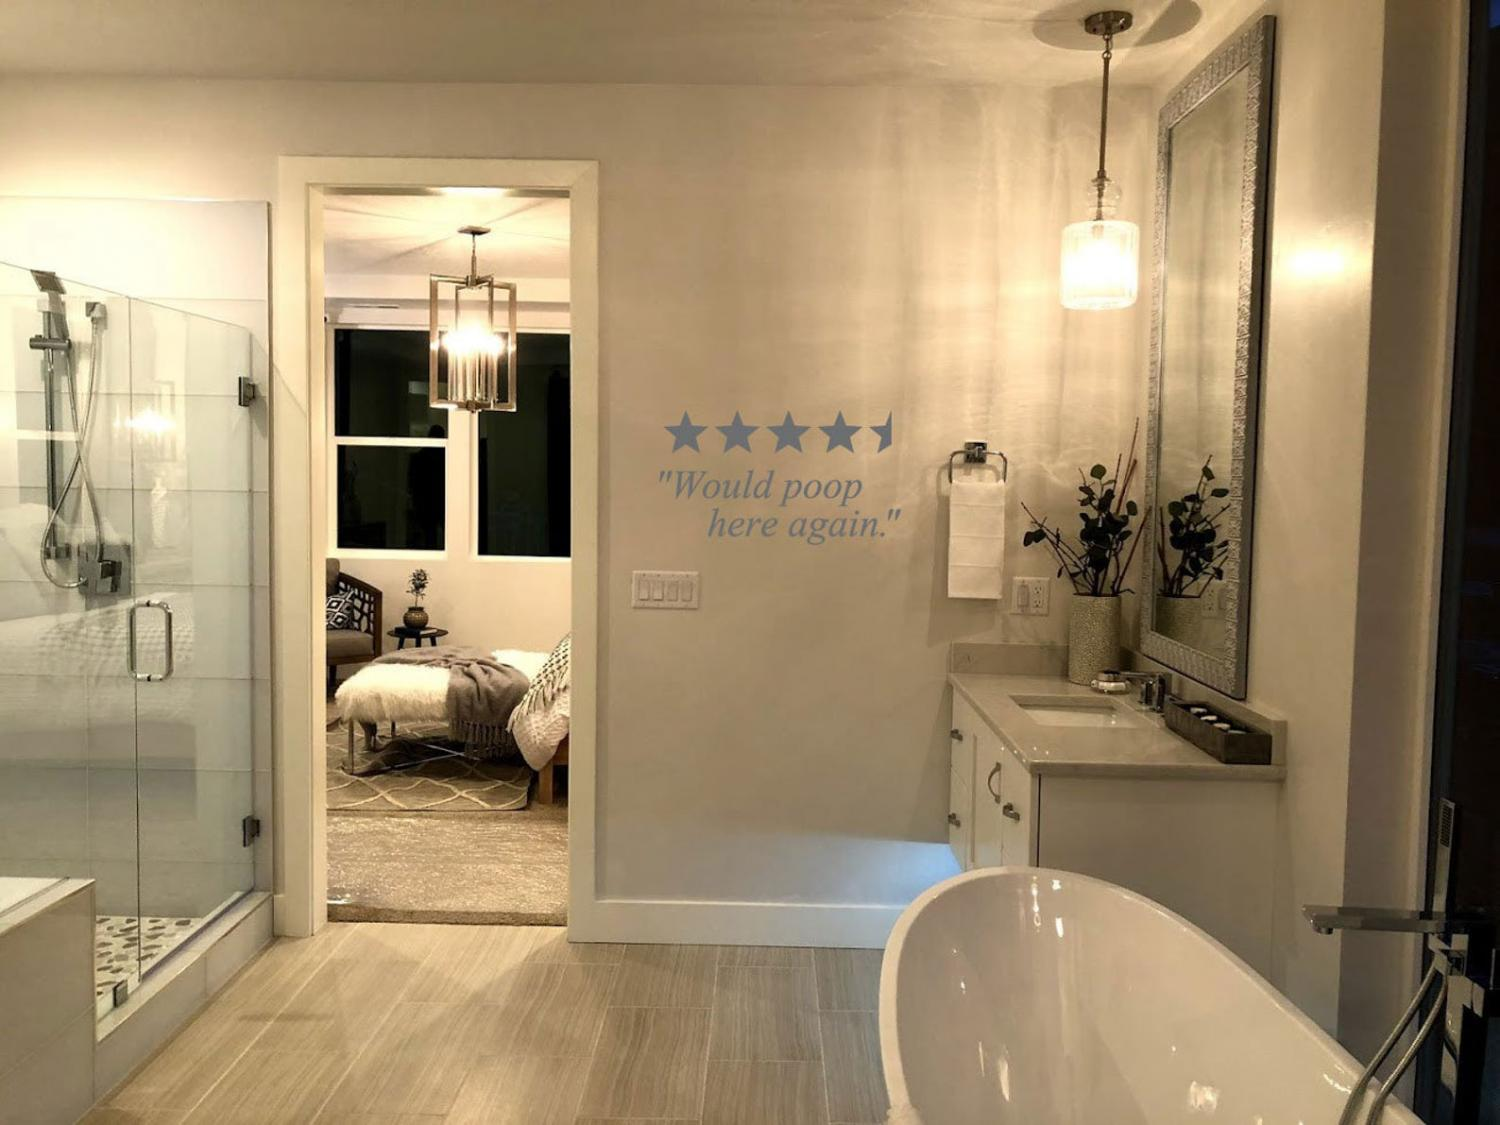 Would Poop Here Again - 5 Star Bathroom Review Wall Decal